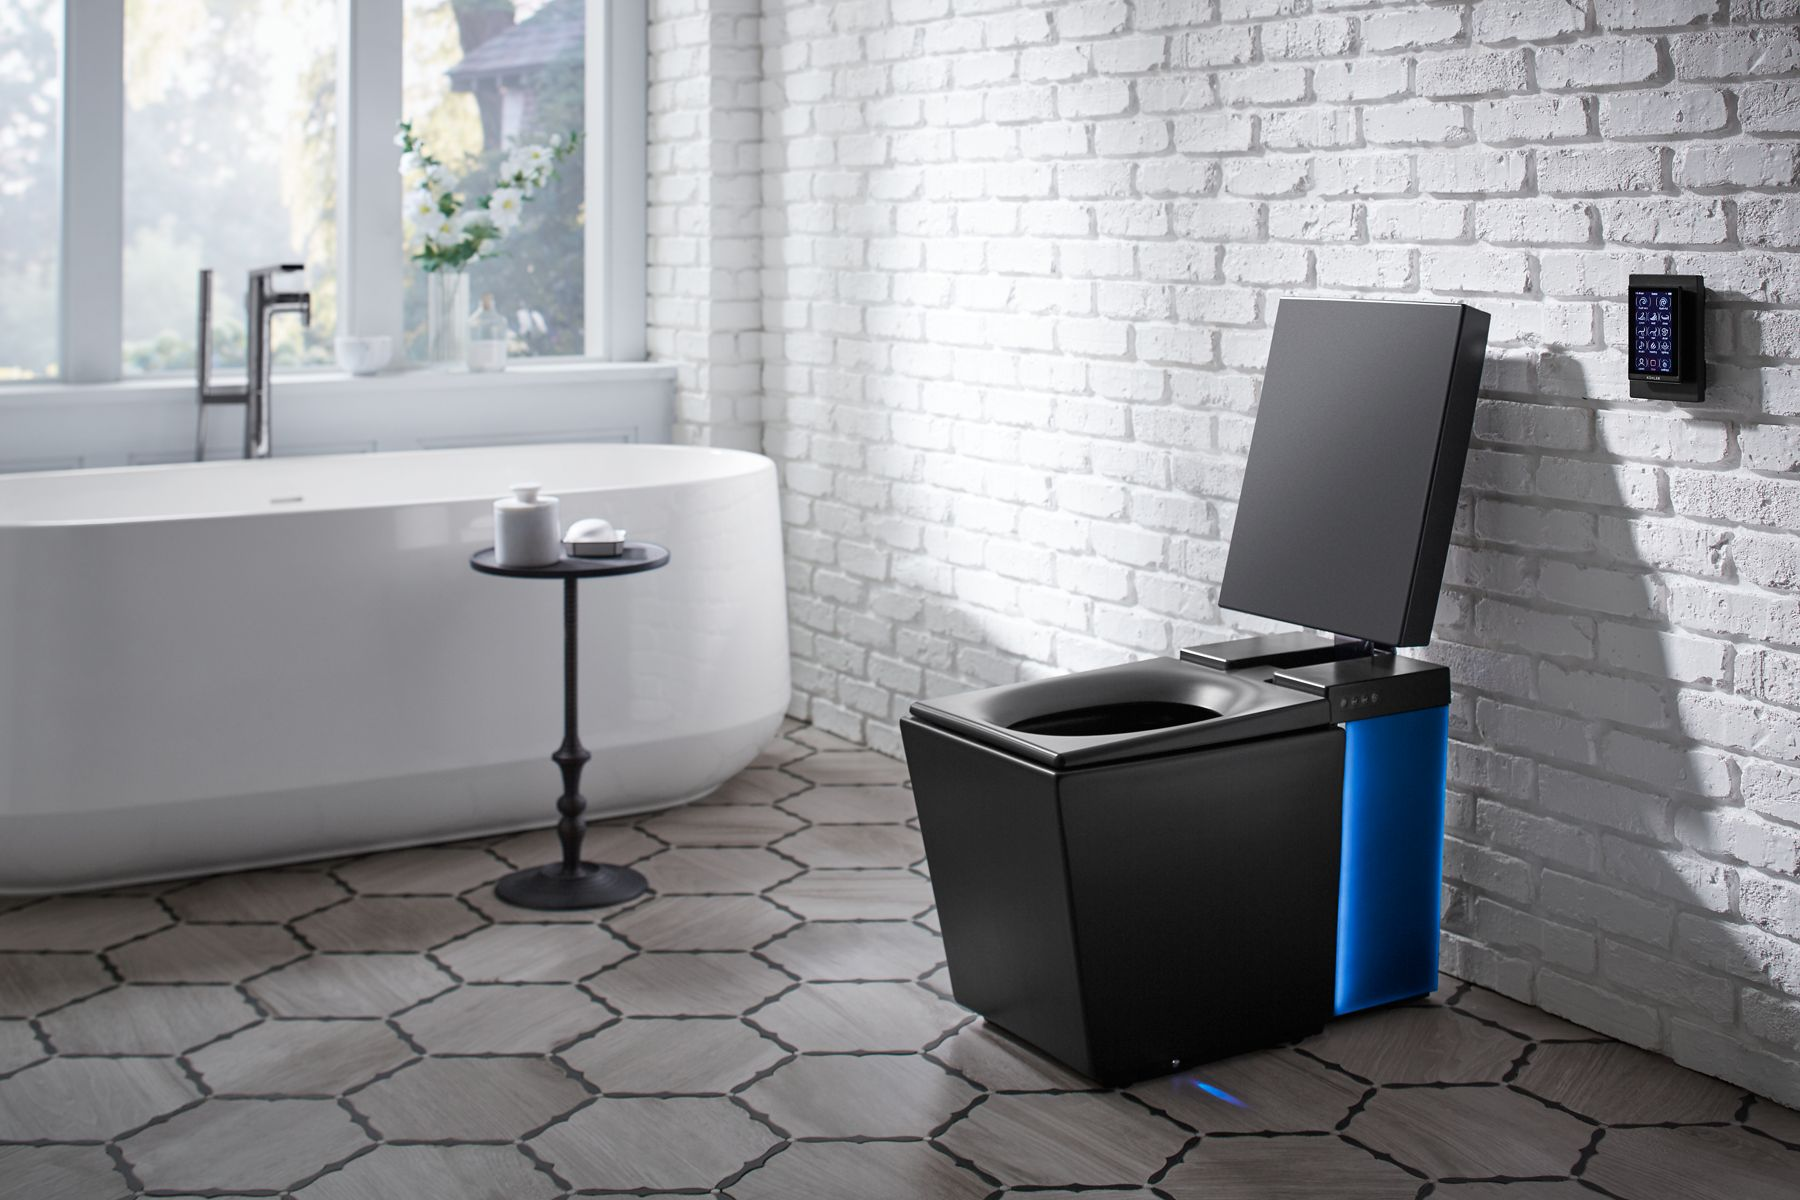 kohler kitchen sink tall garbage can brings sleek honed black color option to its ...